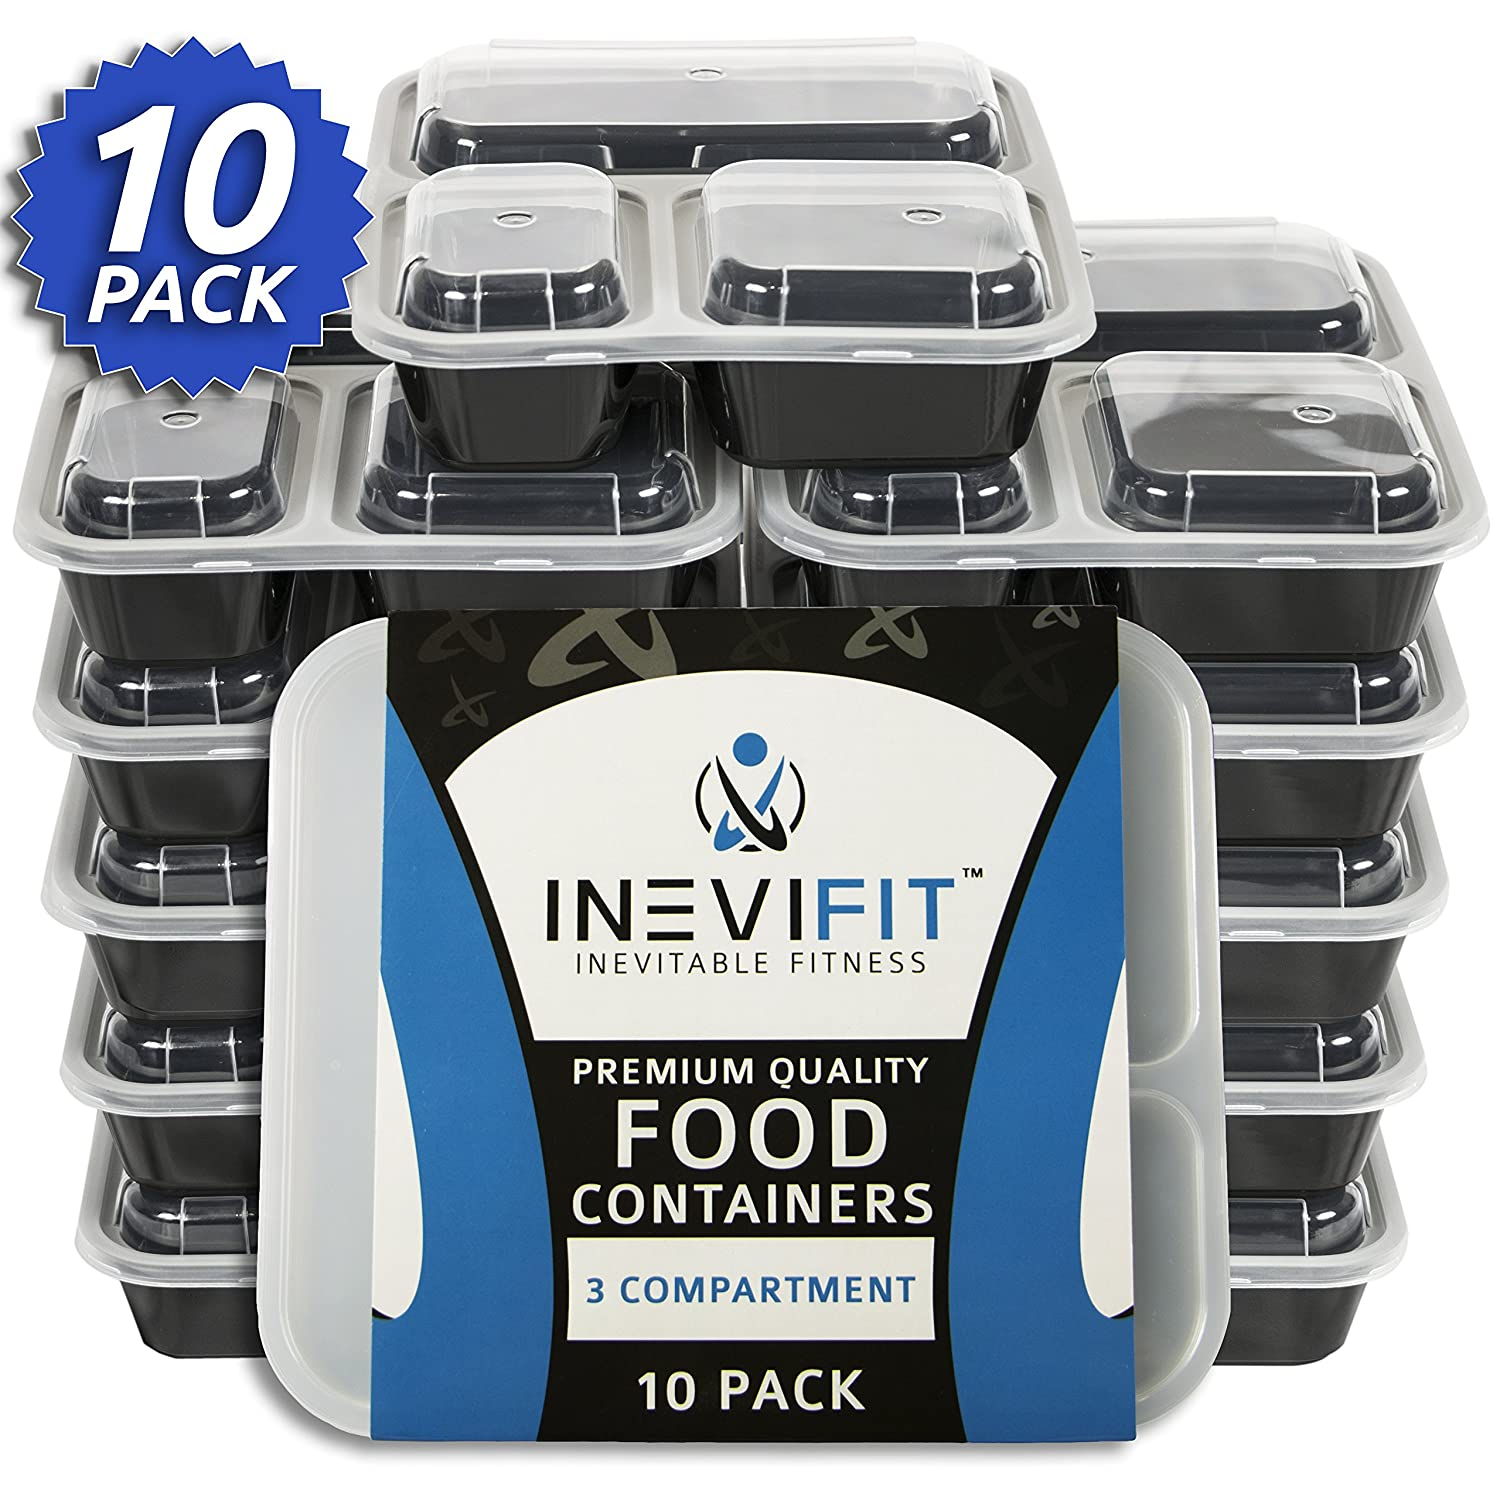 INEVIFIT Meal Prep 3 Compartment BPA FREE, Premium Food Storage Containers, Durable & Reusable, 36 oz. Stackable 10 Pack, Microwaveable & Dishwasher Safe Bento Lunch Box with Leak Resistant Technology I-MP003